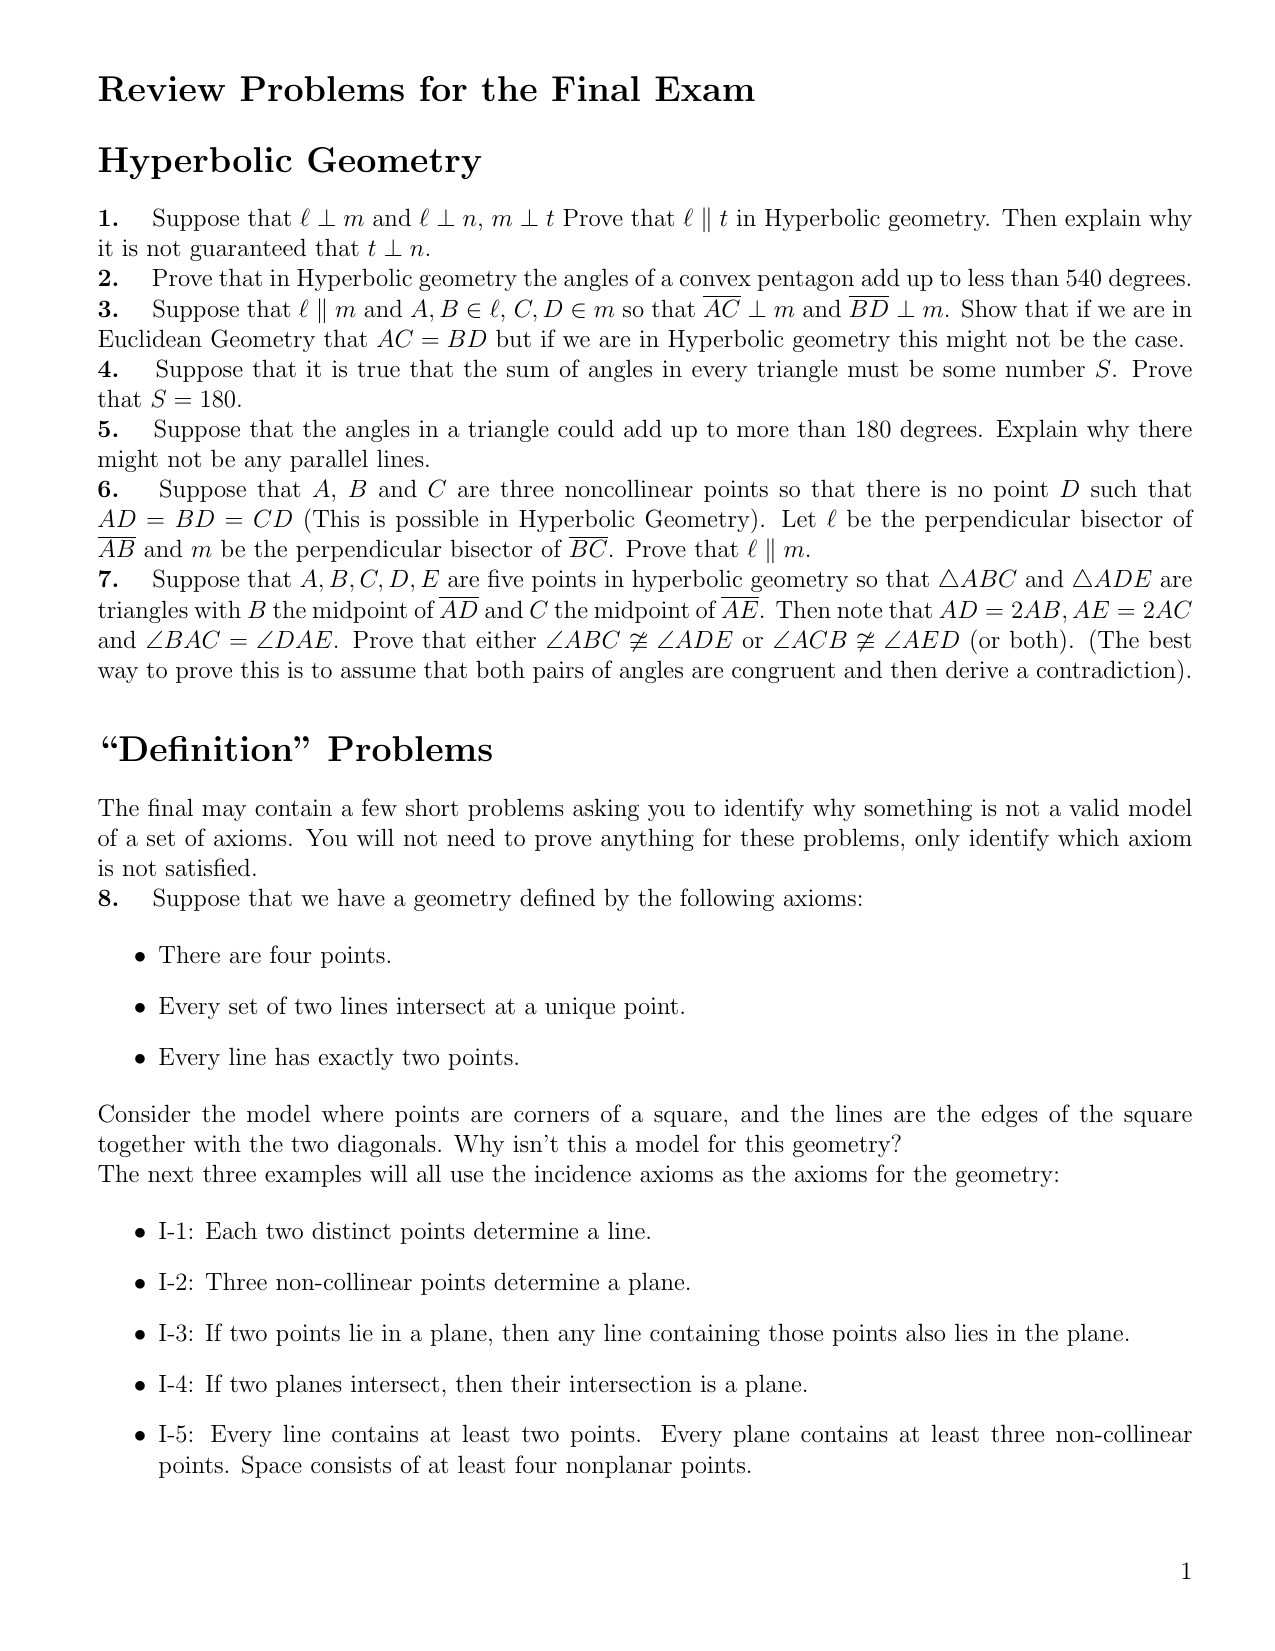 Review Problems for the Final Exam Hyperbolic Geometry